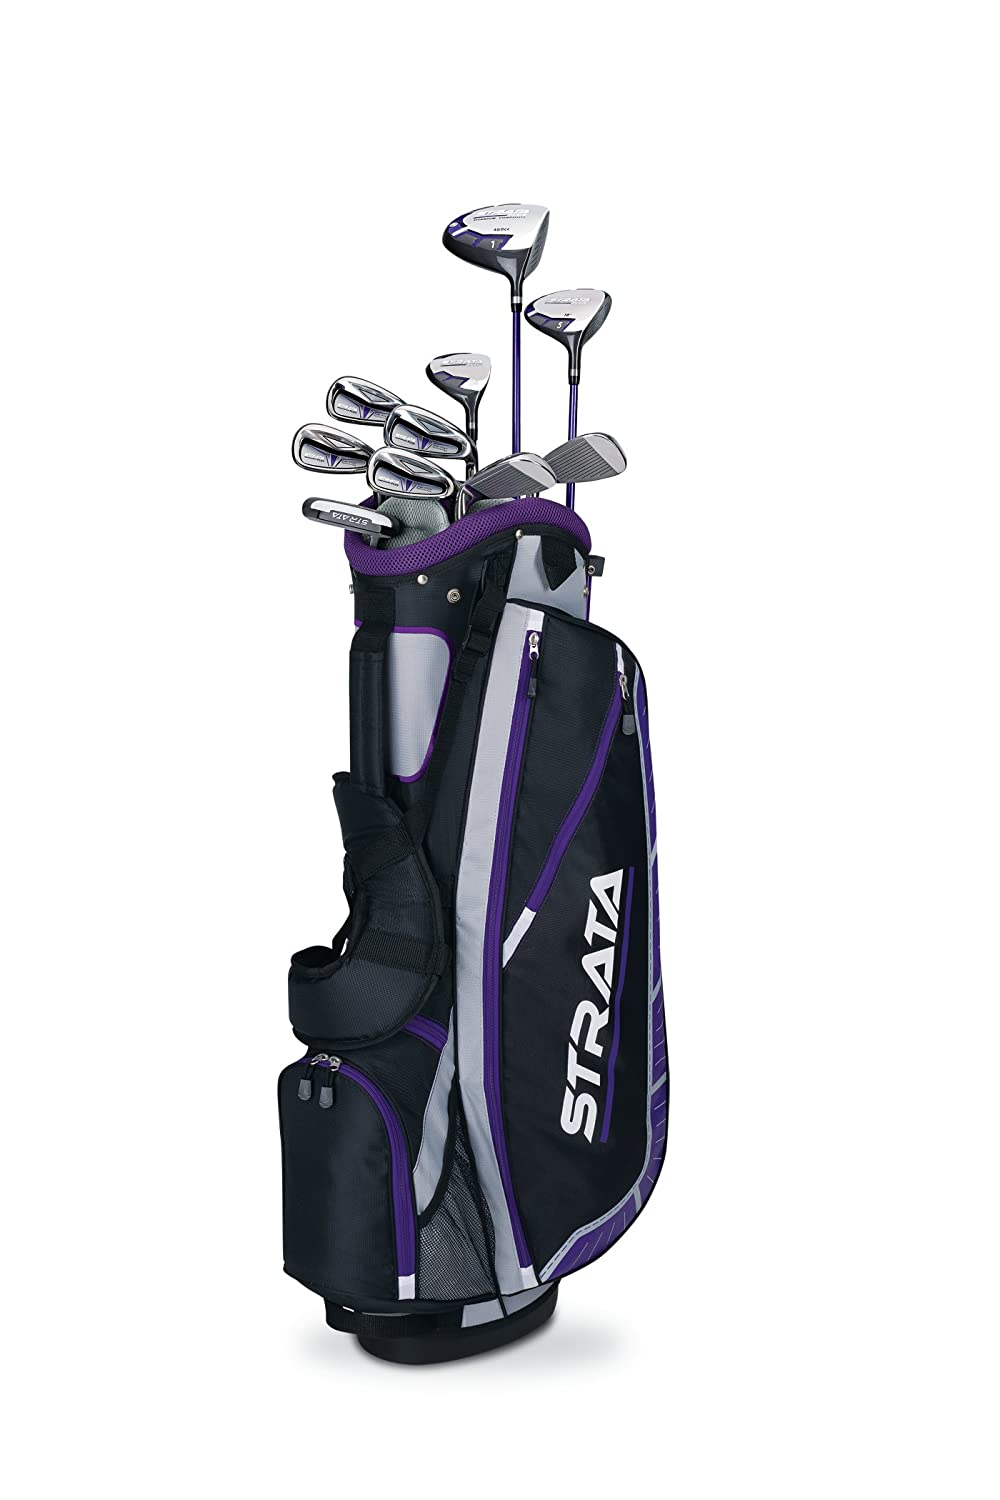 Amazon.com : Callaway Women\'s Strata Plus Complete Golf Set (14 ...